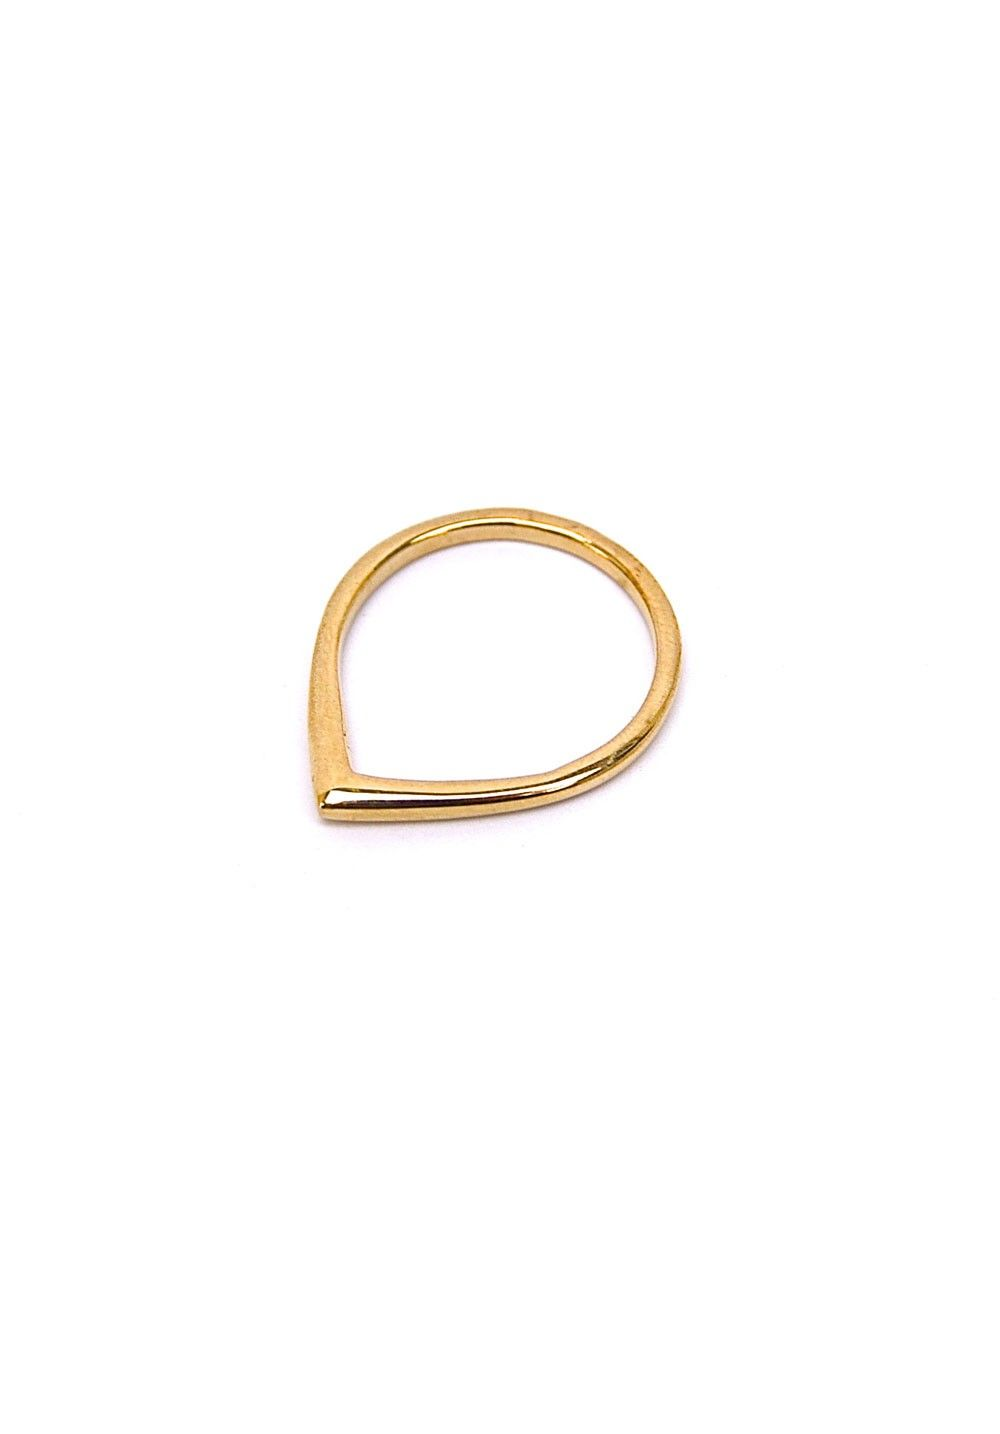 Anna corrigan teardrop ring yellow gold rings body jewelry